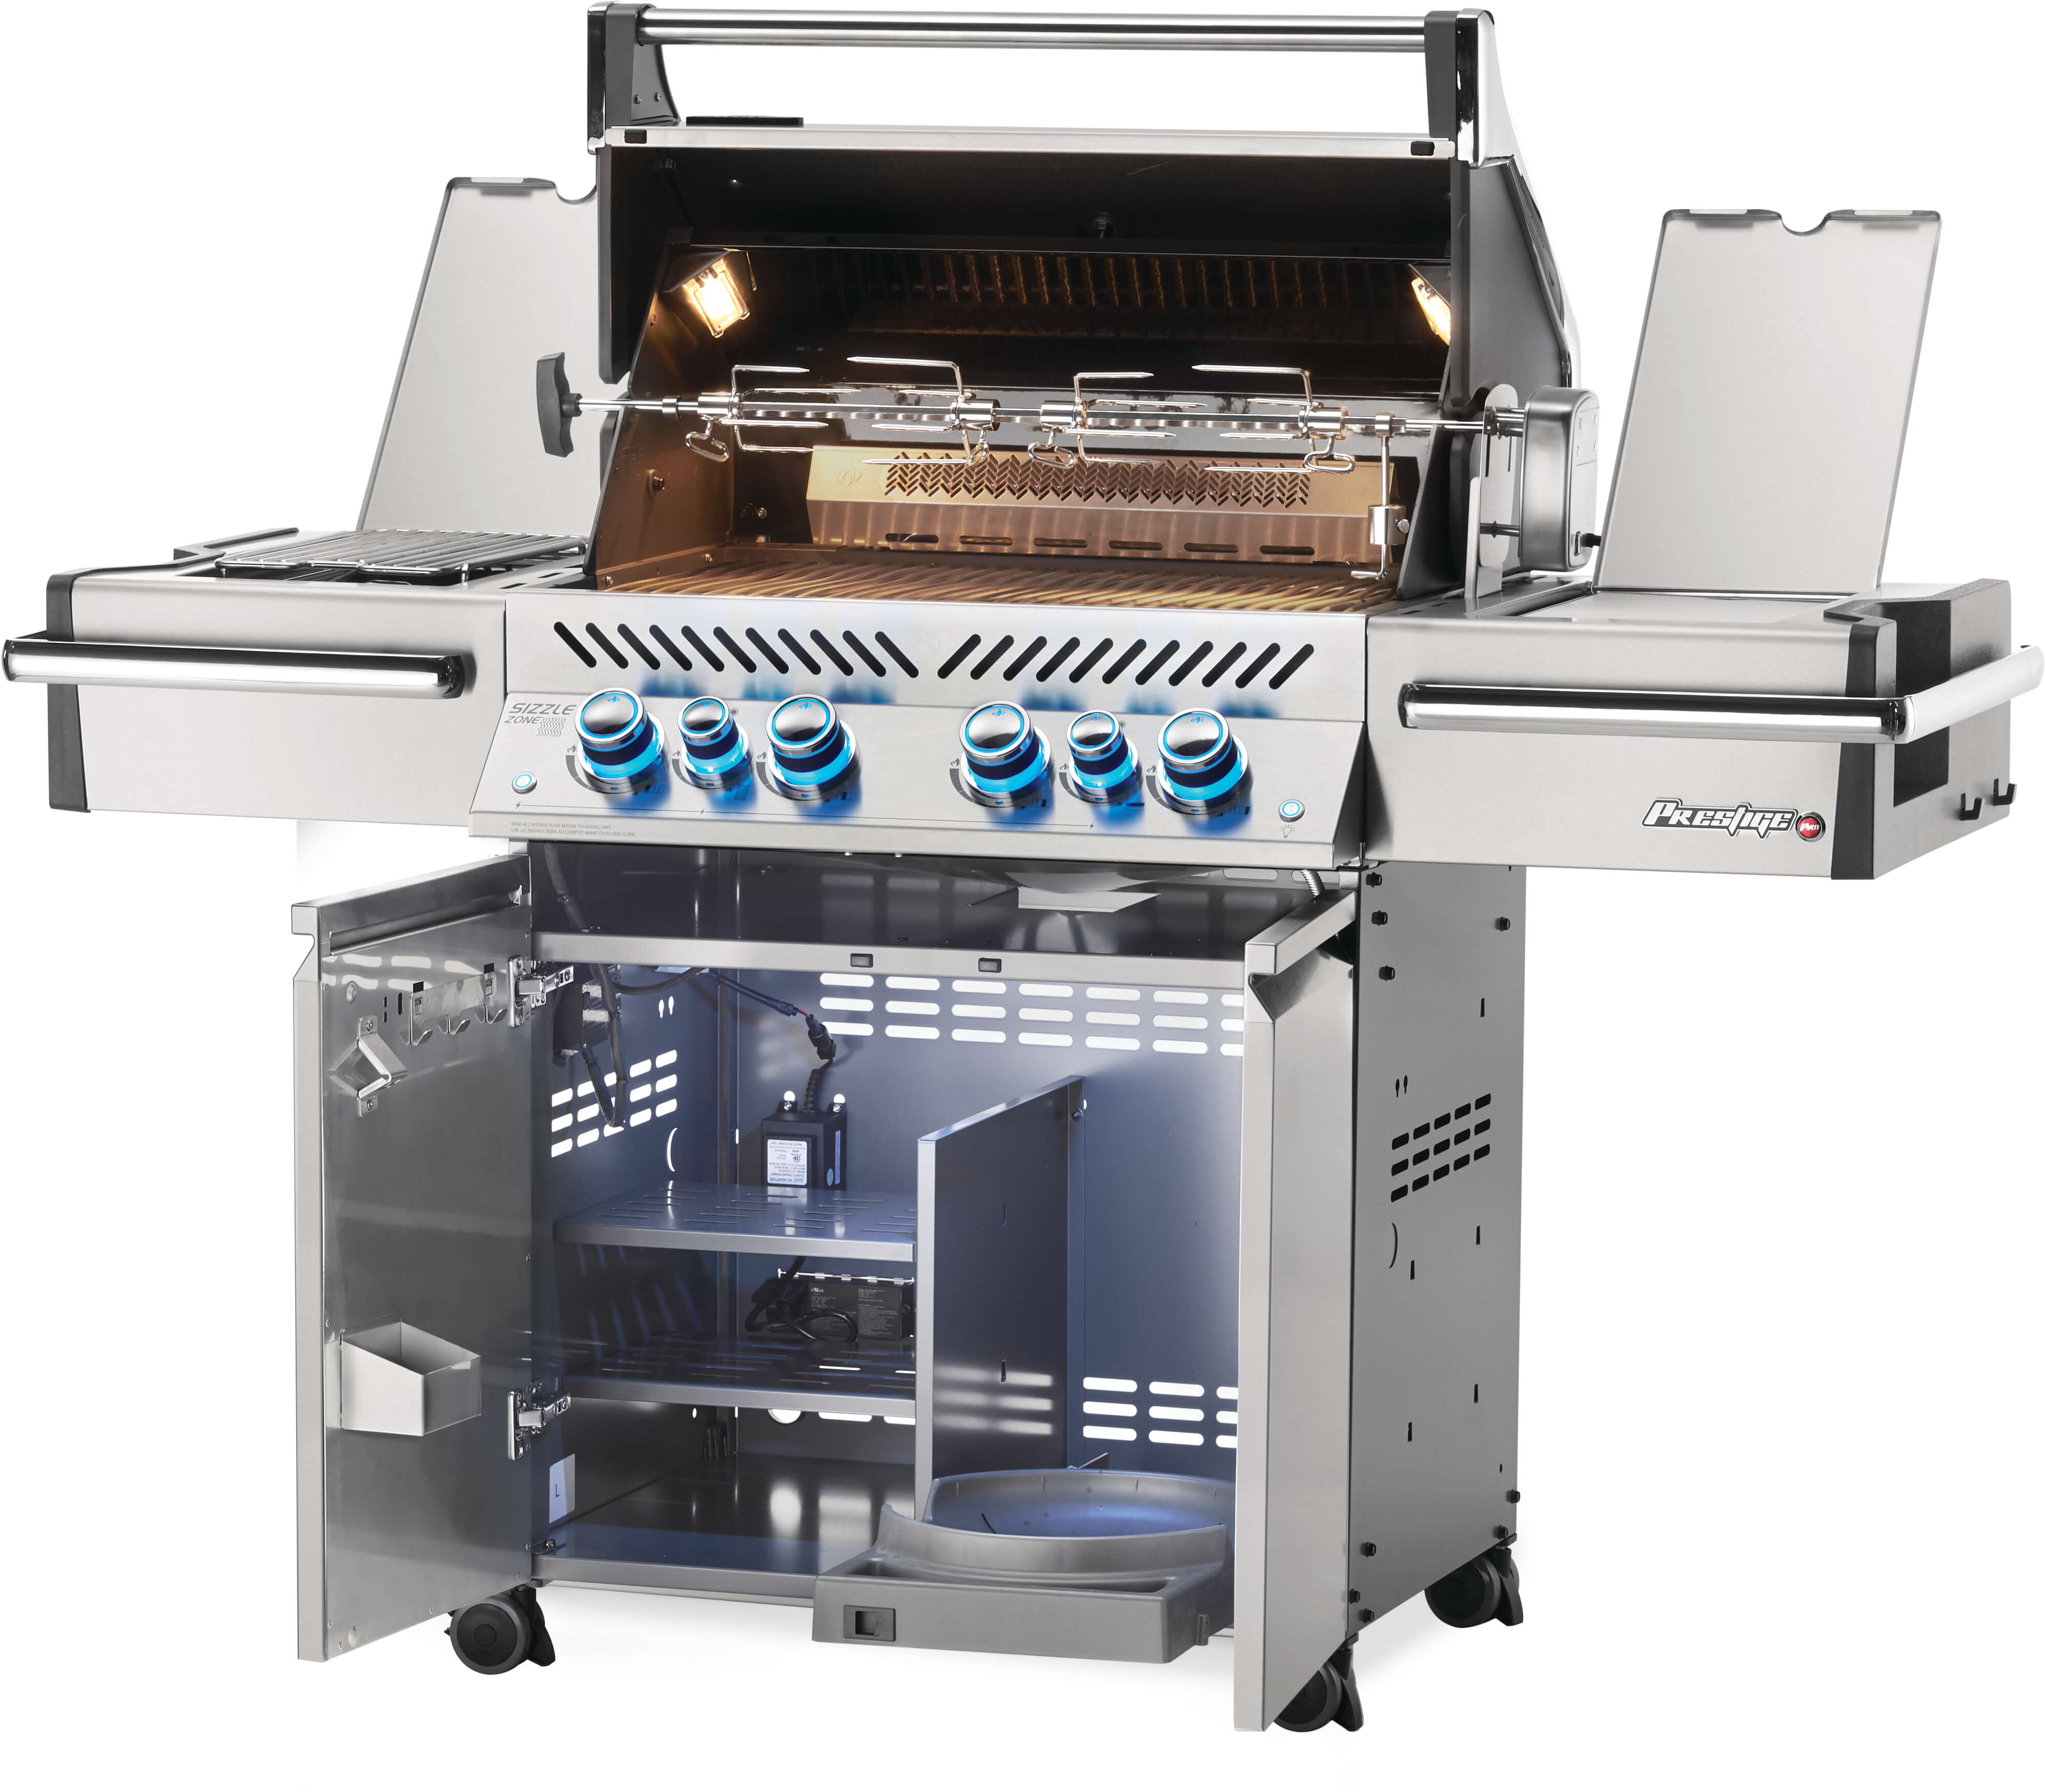 Prestige PRO™ 500 Natural Gas Grill with Infrared Rear and Side Burners, Stainless Steel